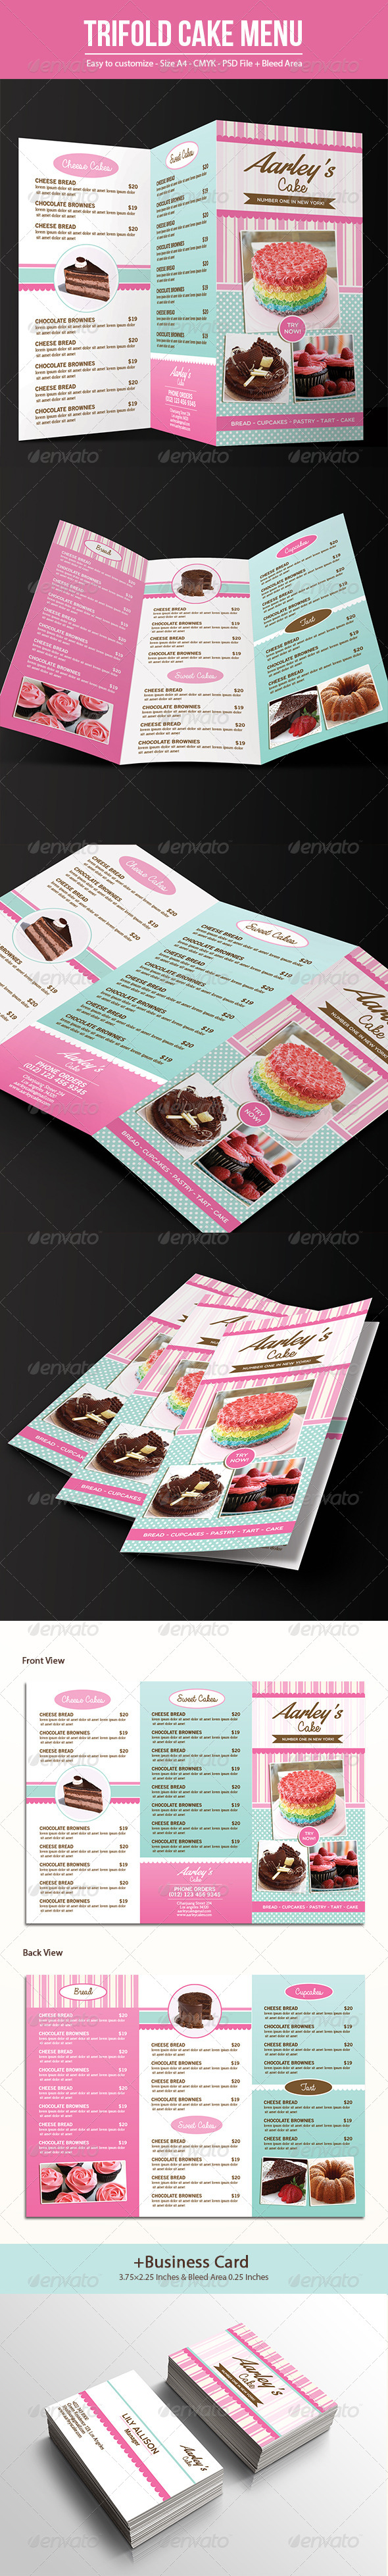 GraphicRiver Trifold Cake Menu & Business Card 7642416